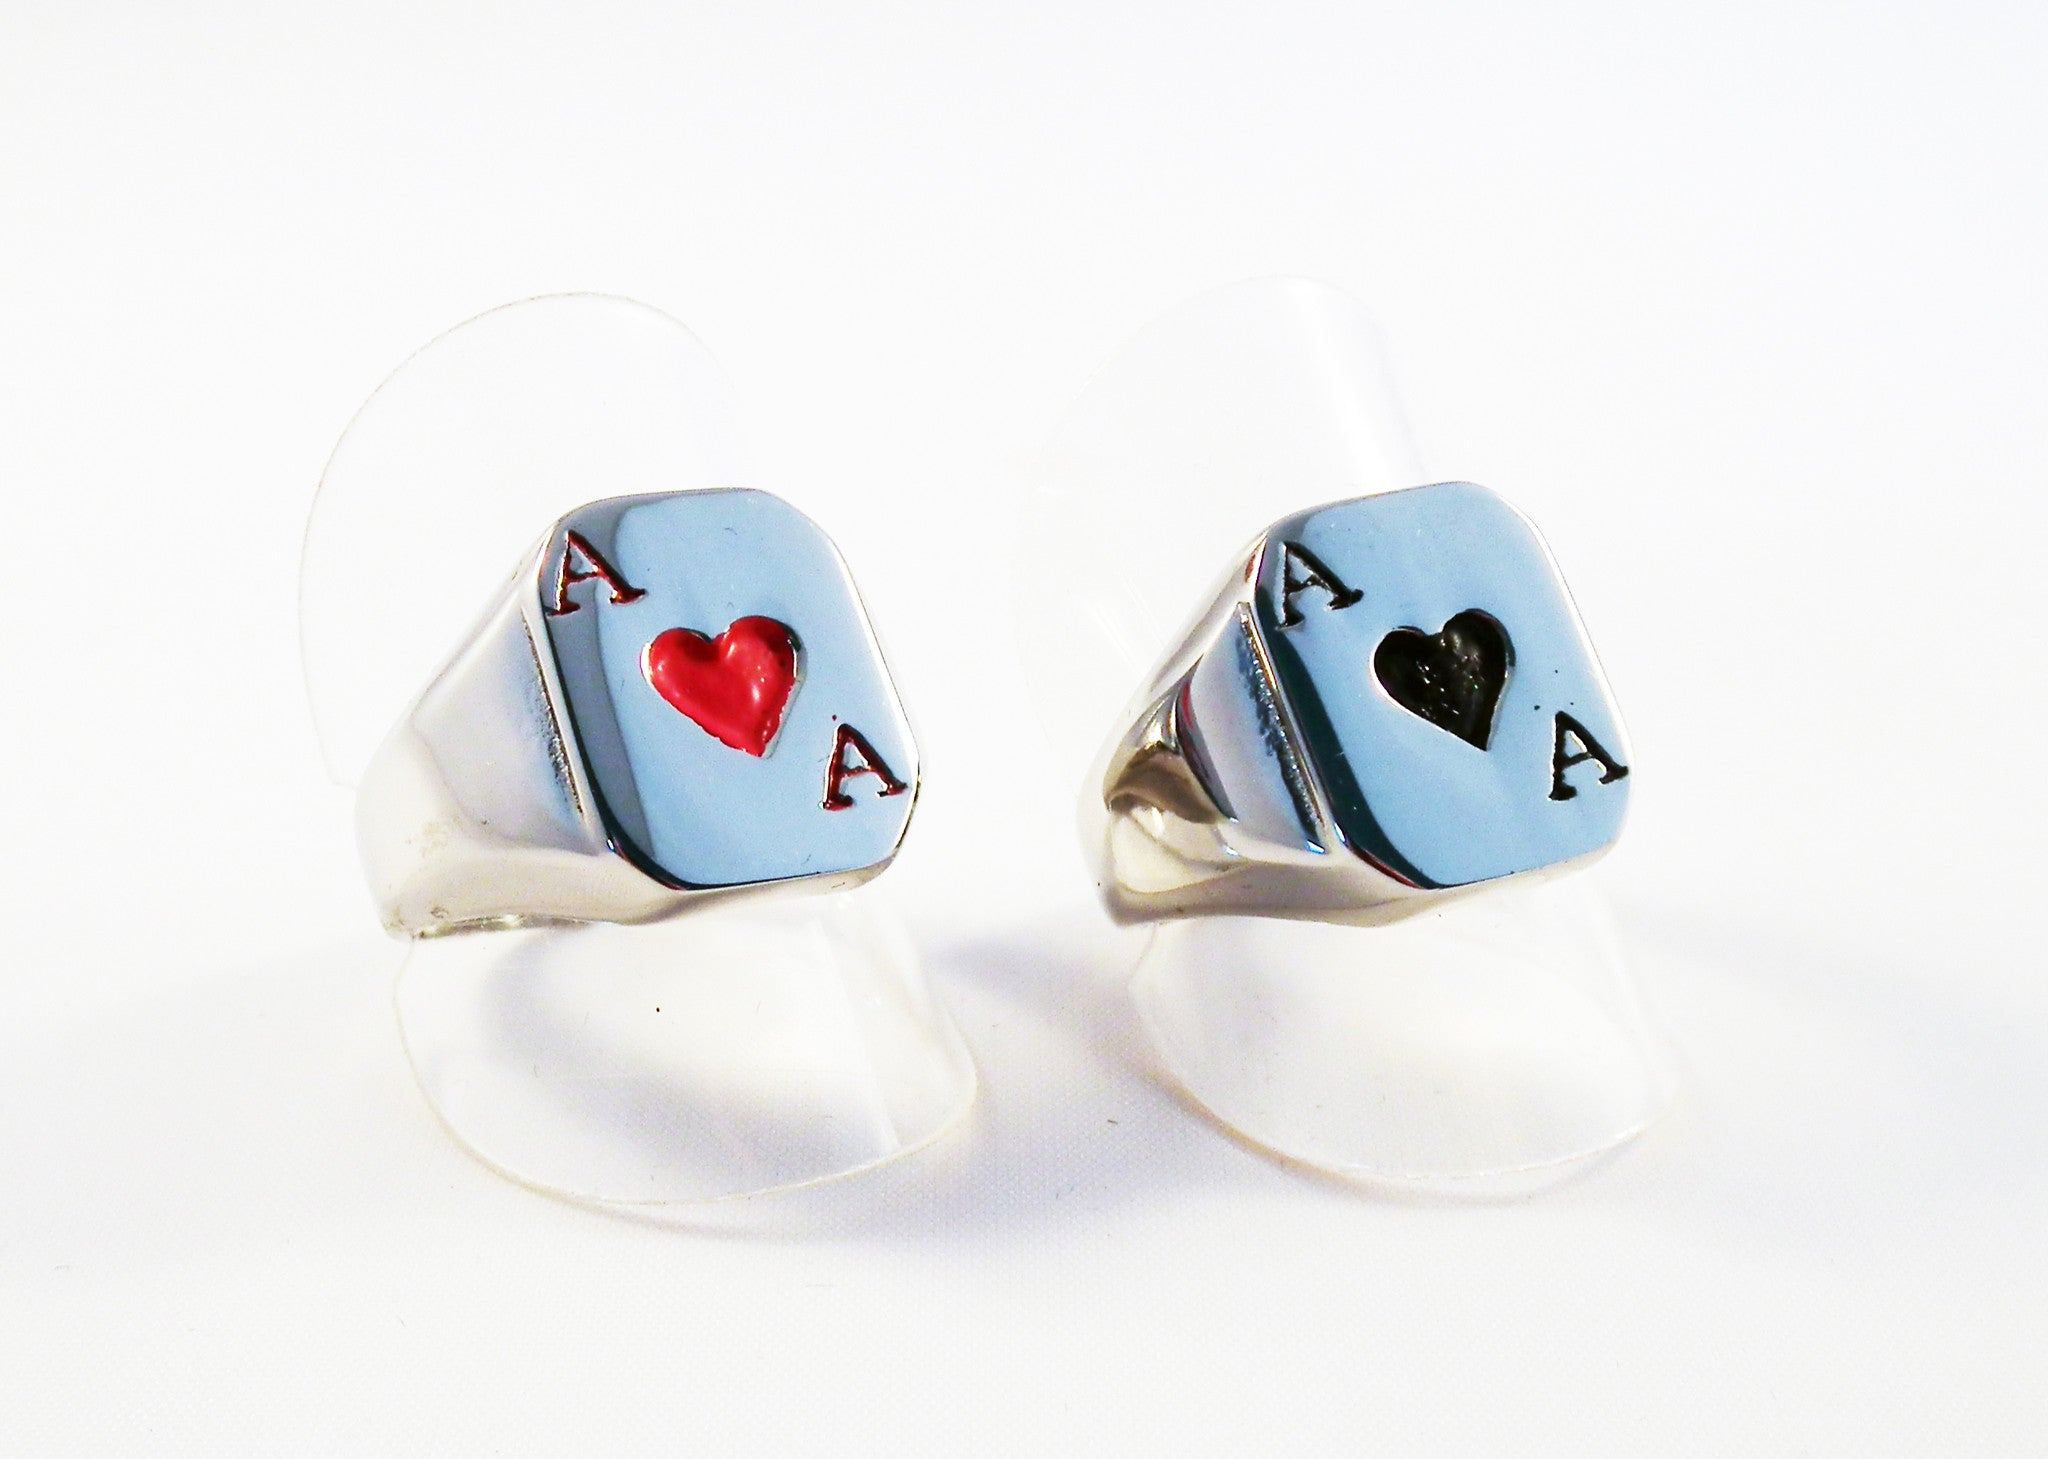 Bague en Acier As de Coeur / Ace of Heart Steel Ring - No Mercy Making